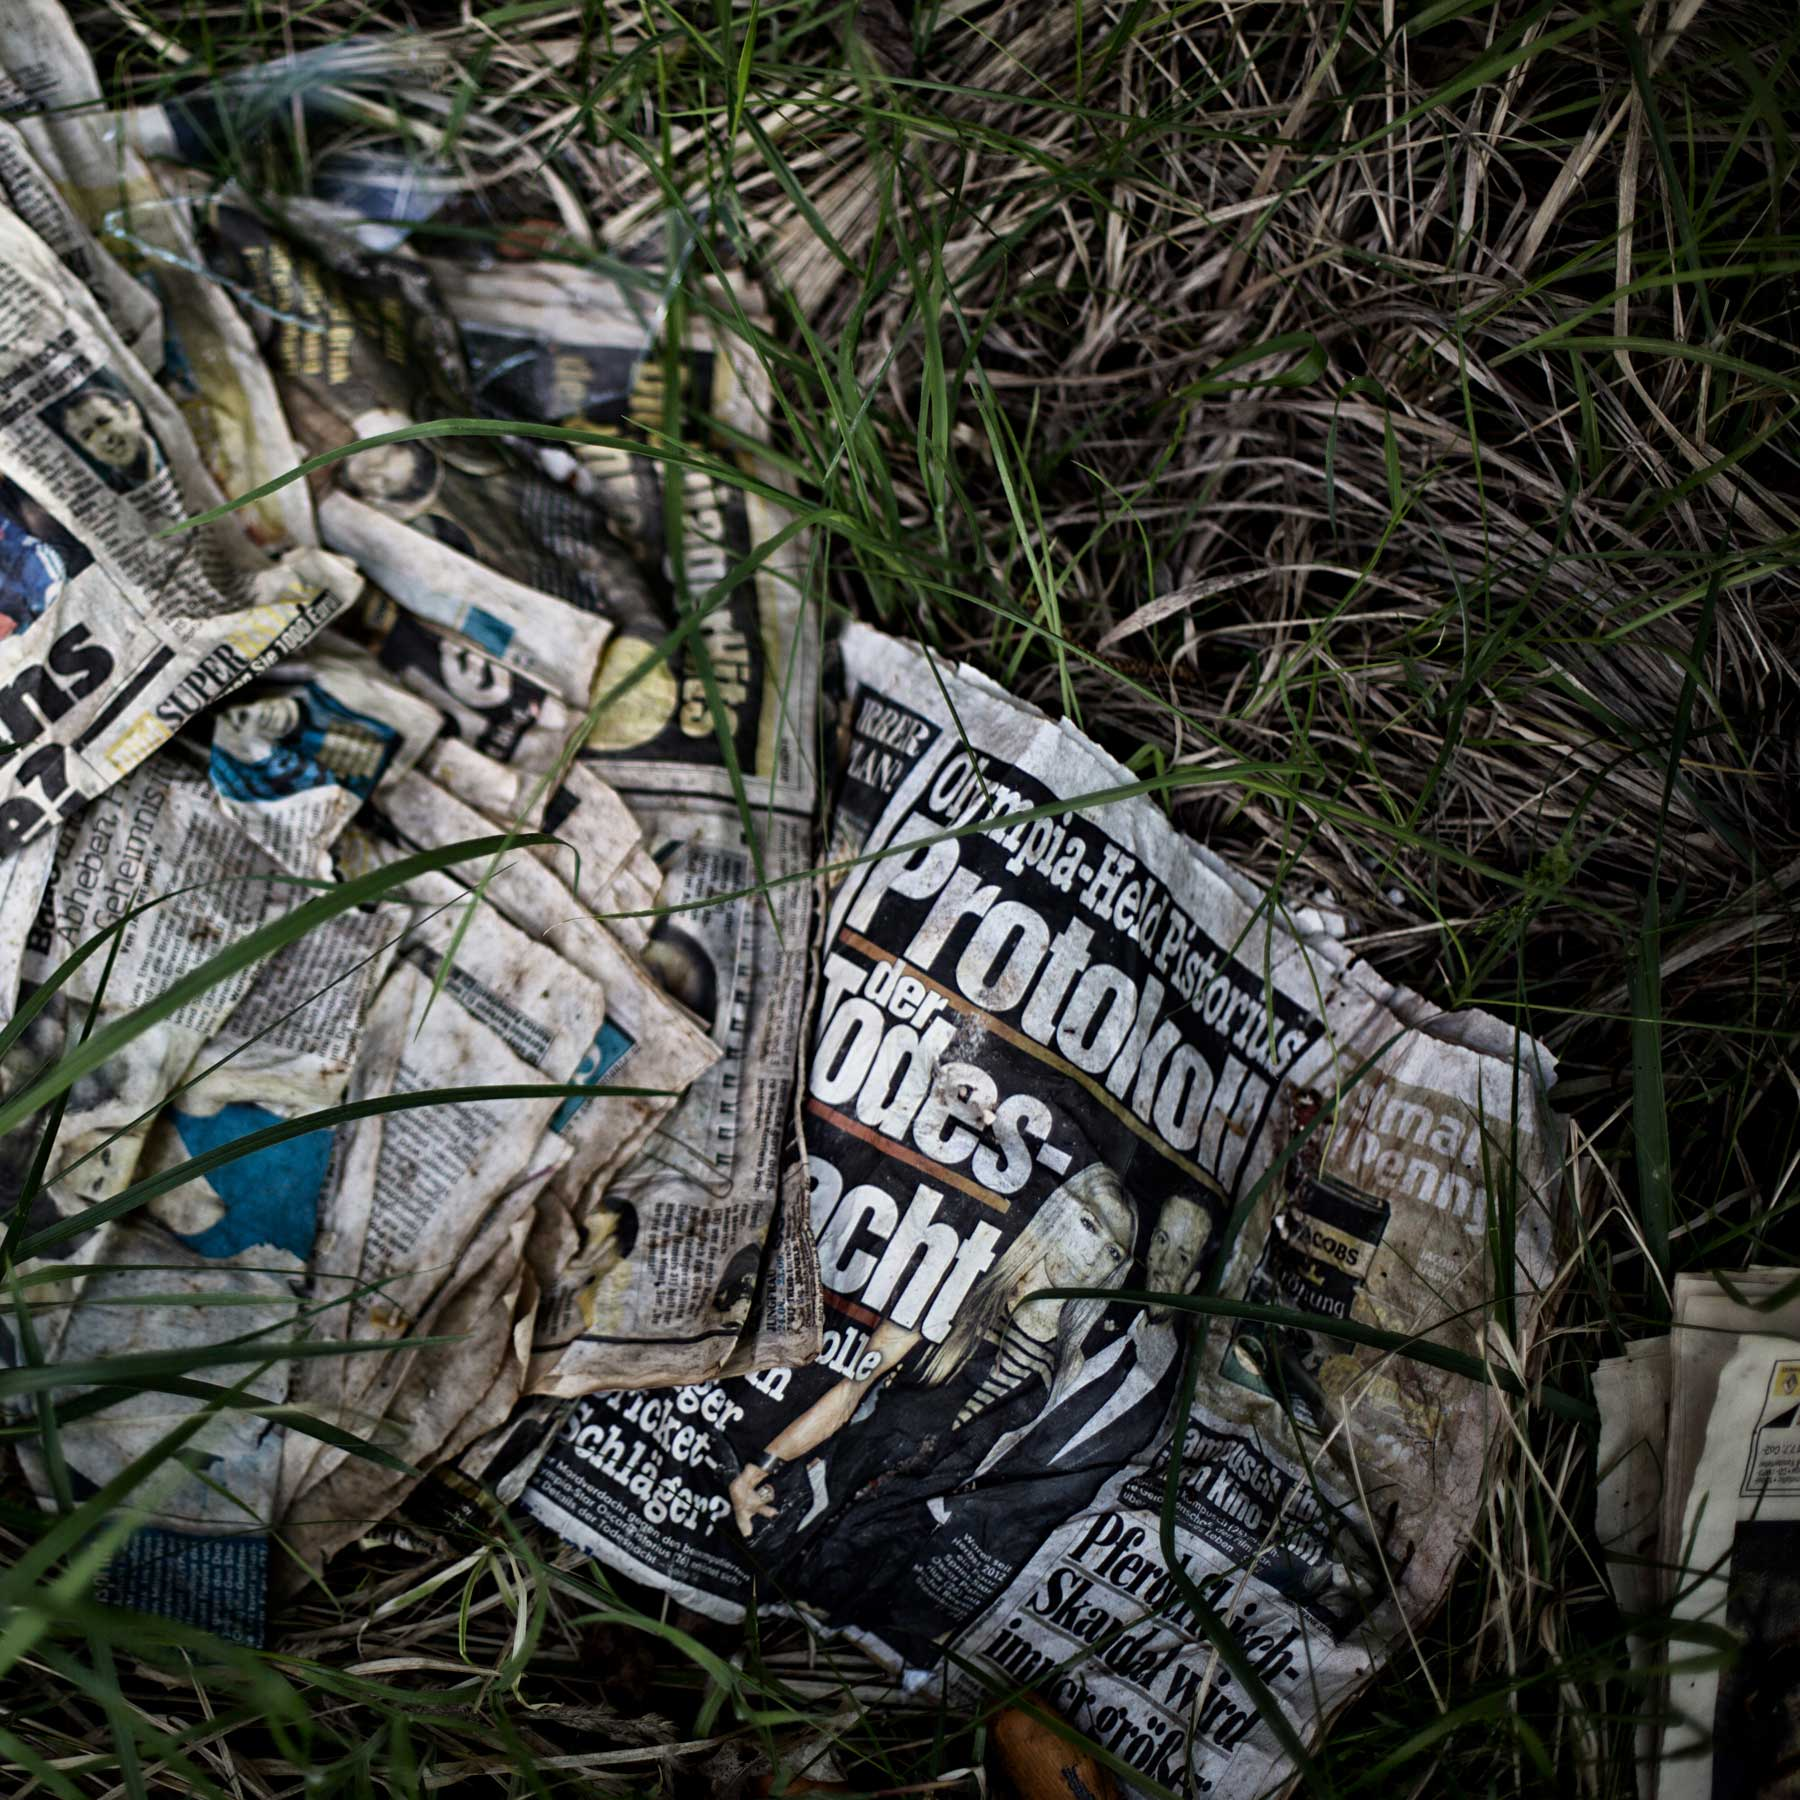 Old newspapers lay in the tall grass outside of an abandoned community.